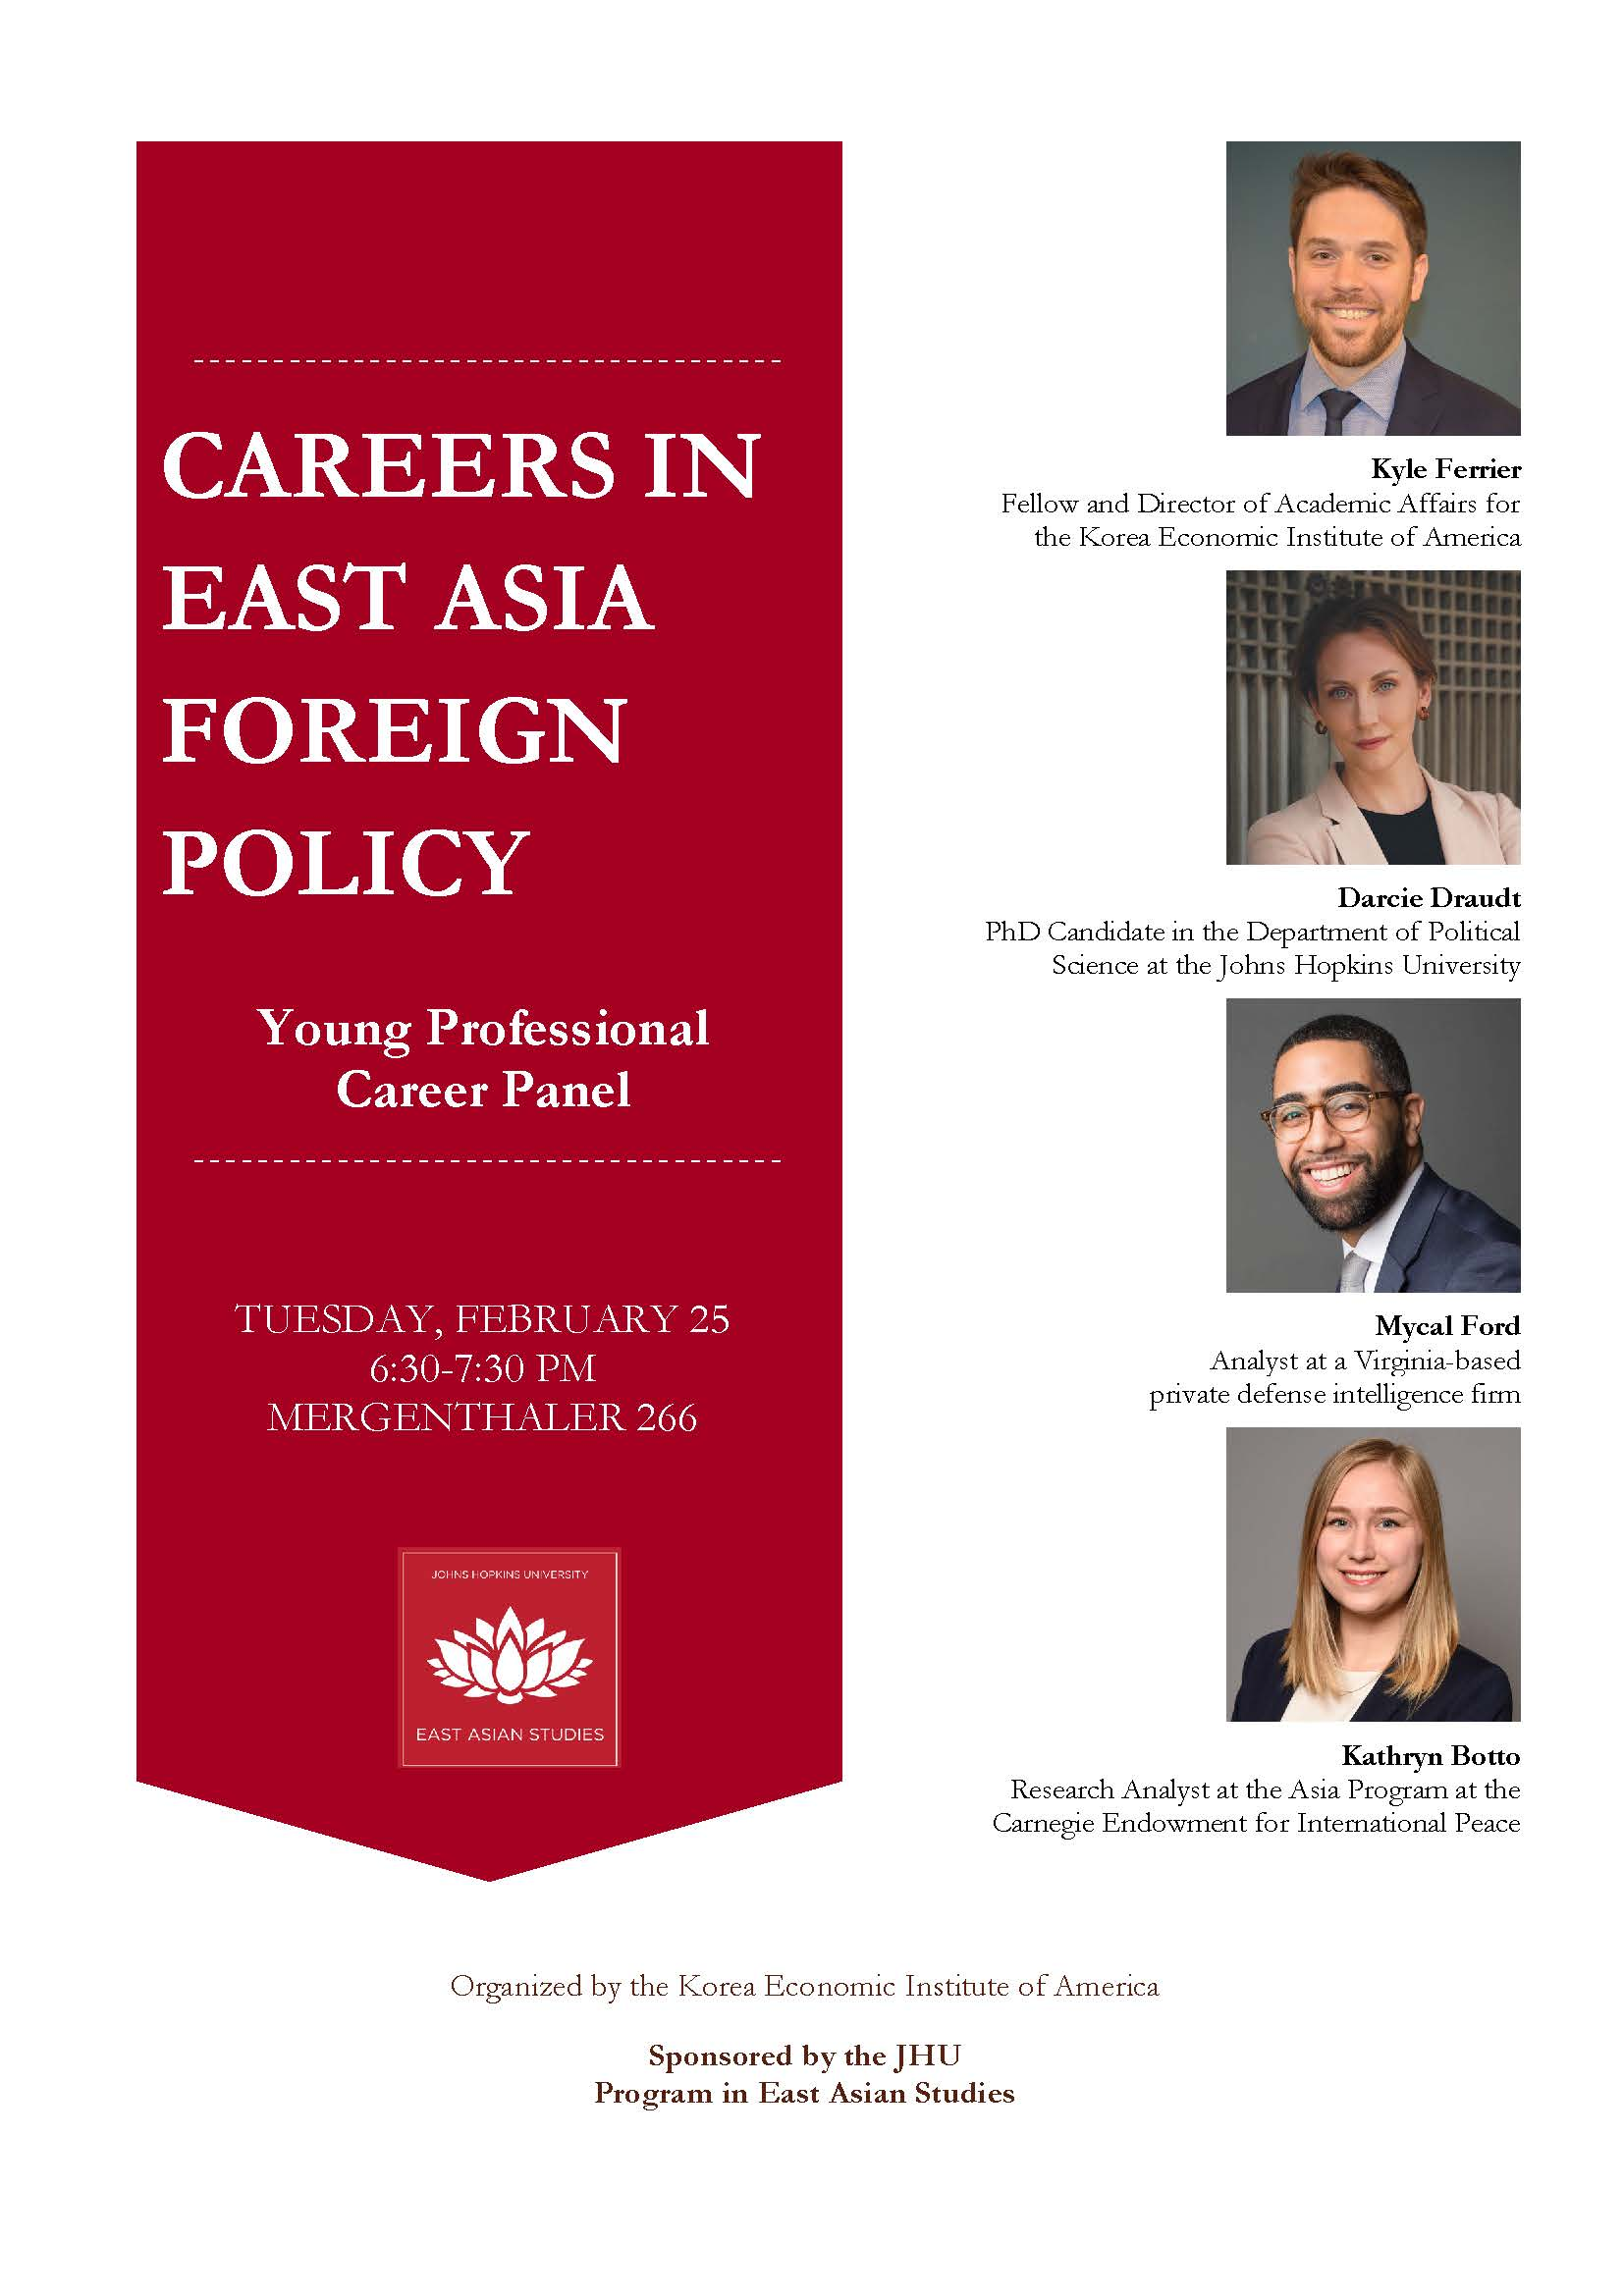 Careers In East Asia Foreign Policy Young Professional Career Panel, Feb. 25